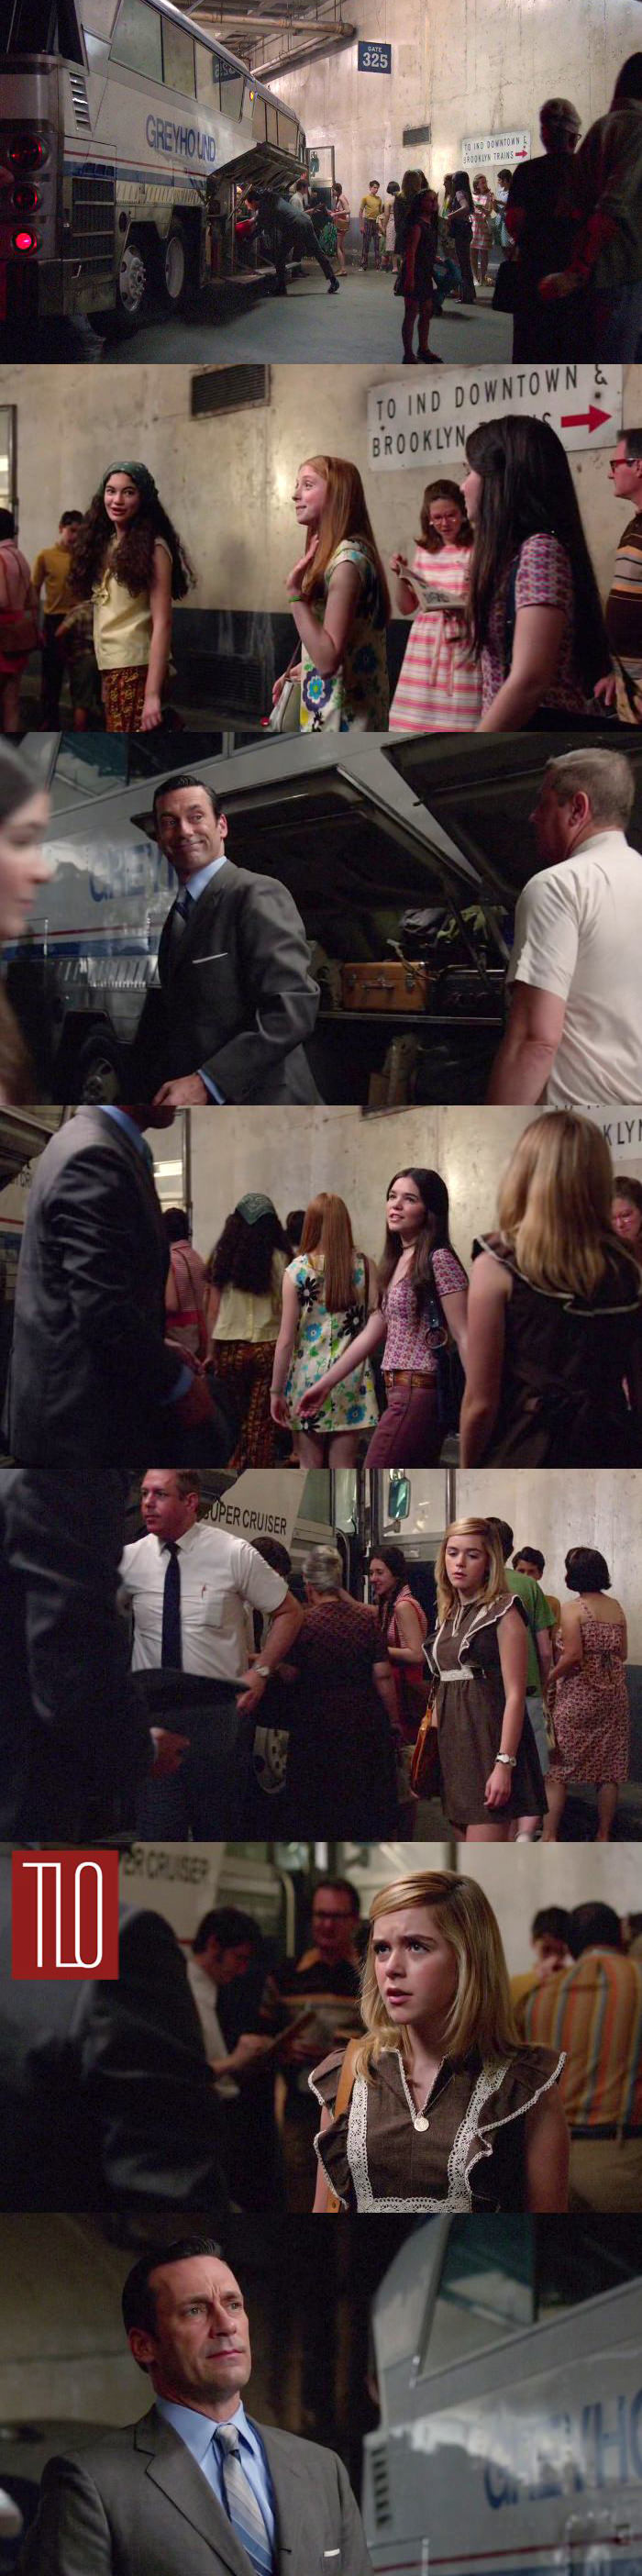 Mad-Men-Television-Mad-Style-Episode-New-Business-Tom-Lorenzo-Site-TLO-(24B)